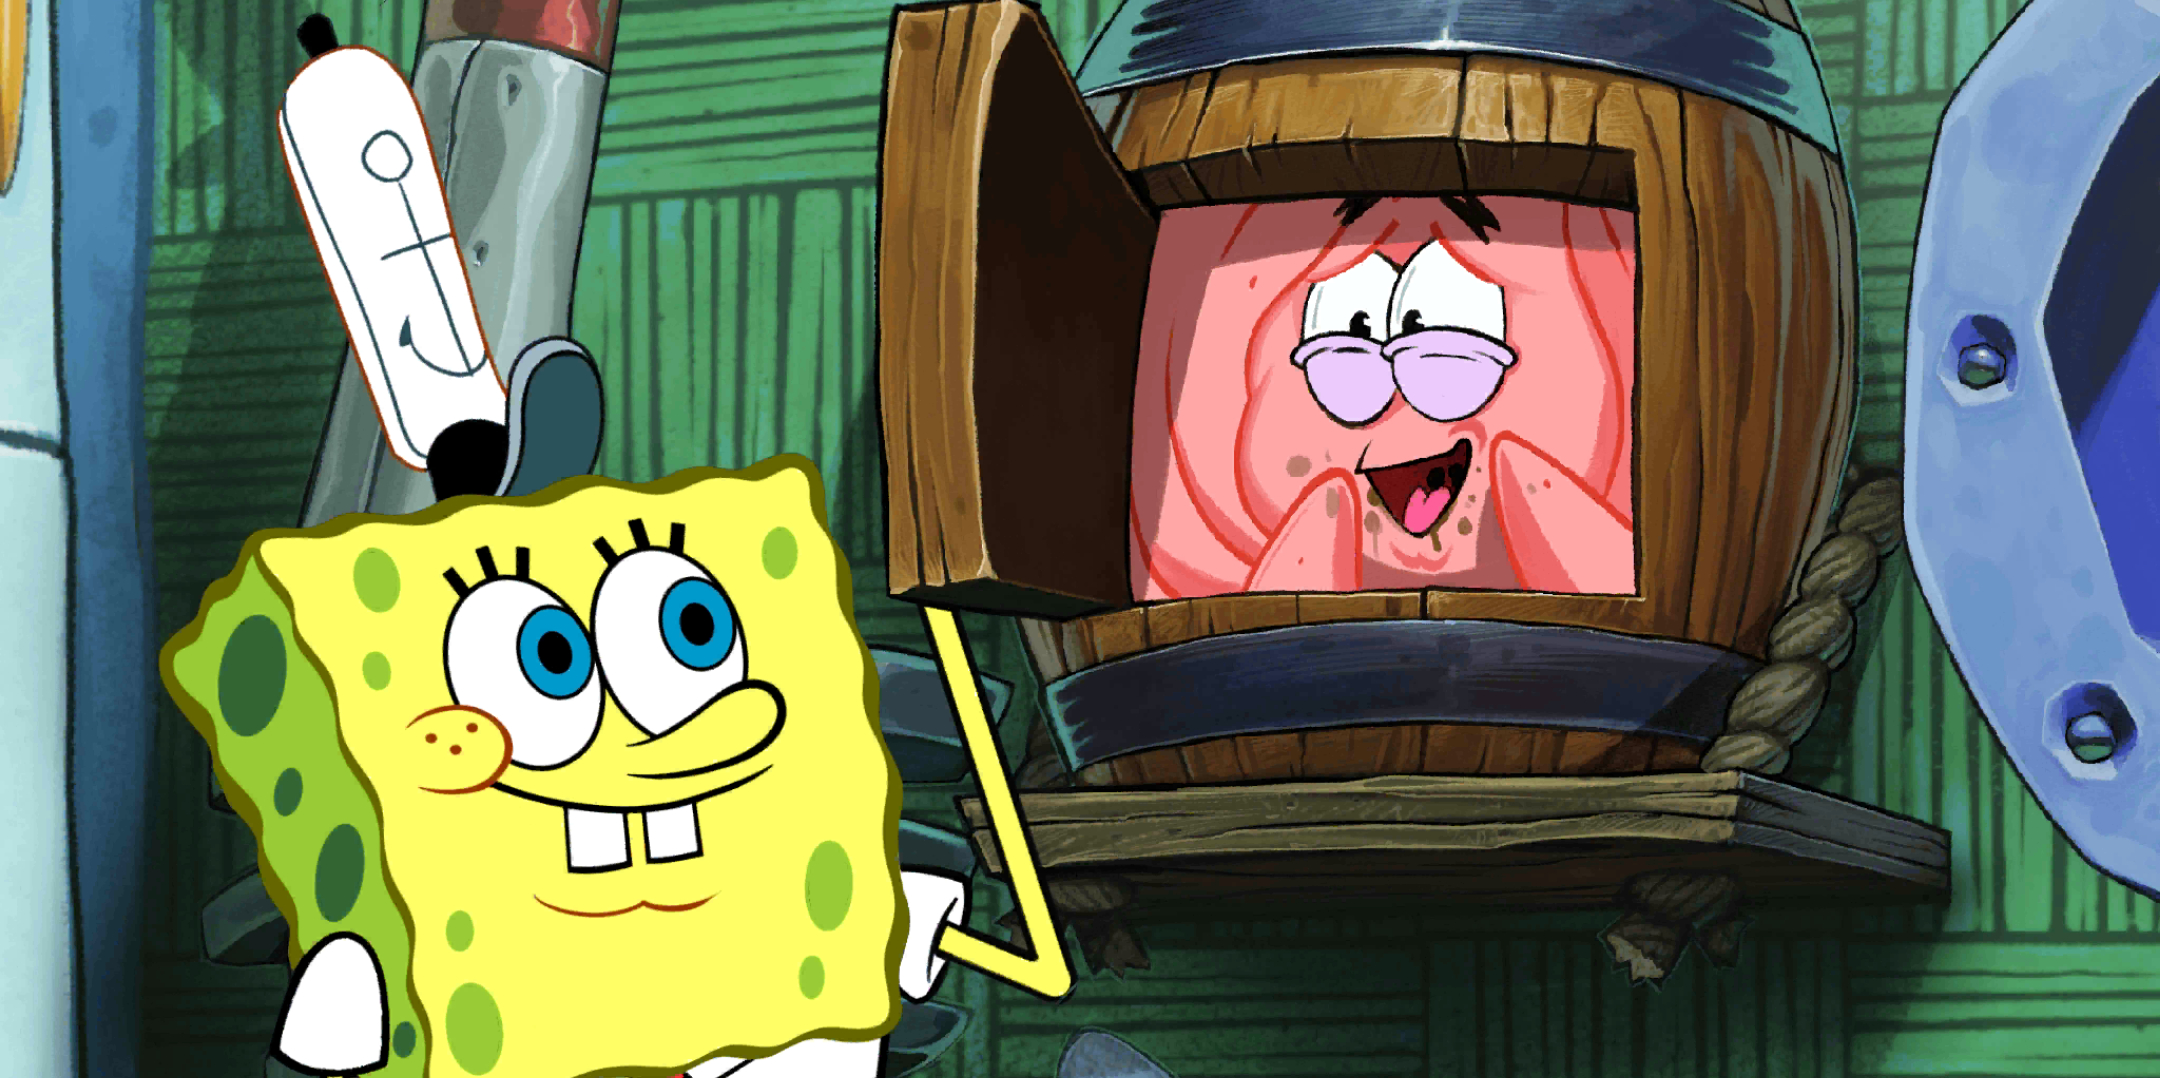 SpongeBob: Patty Pursuit, out now on Apple Arcade, is a kid-friendly runner for fans of Nickelodeon